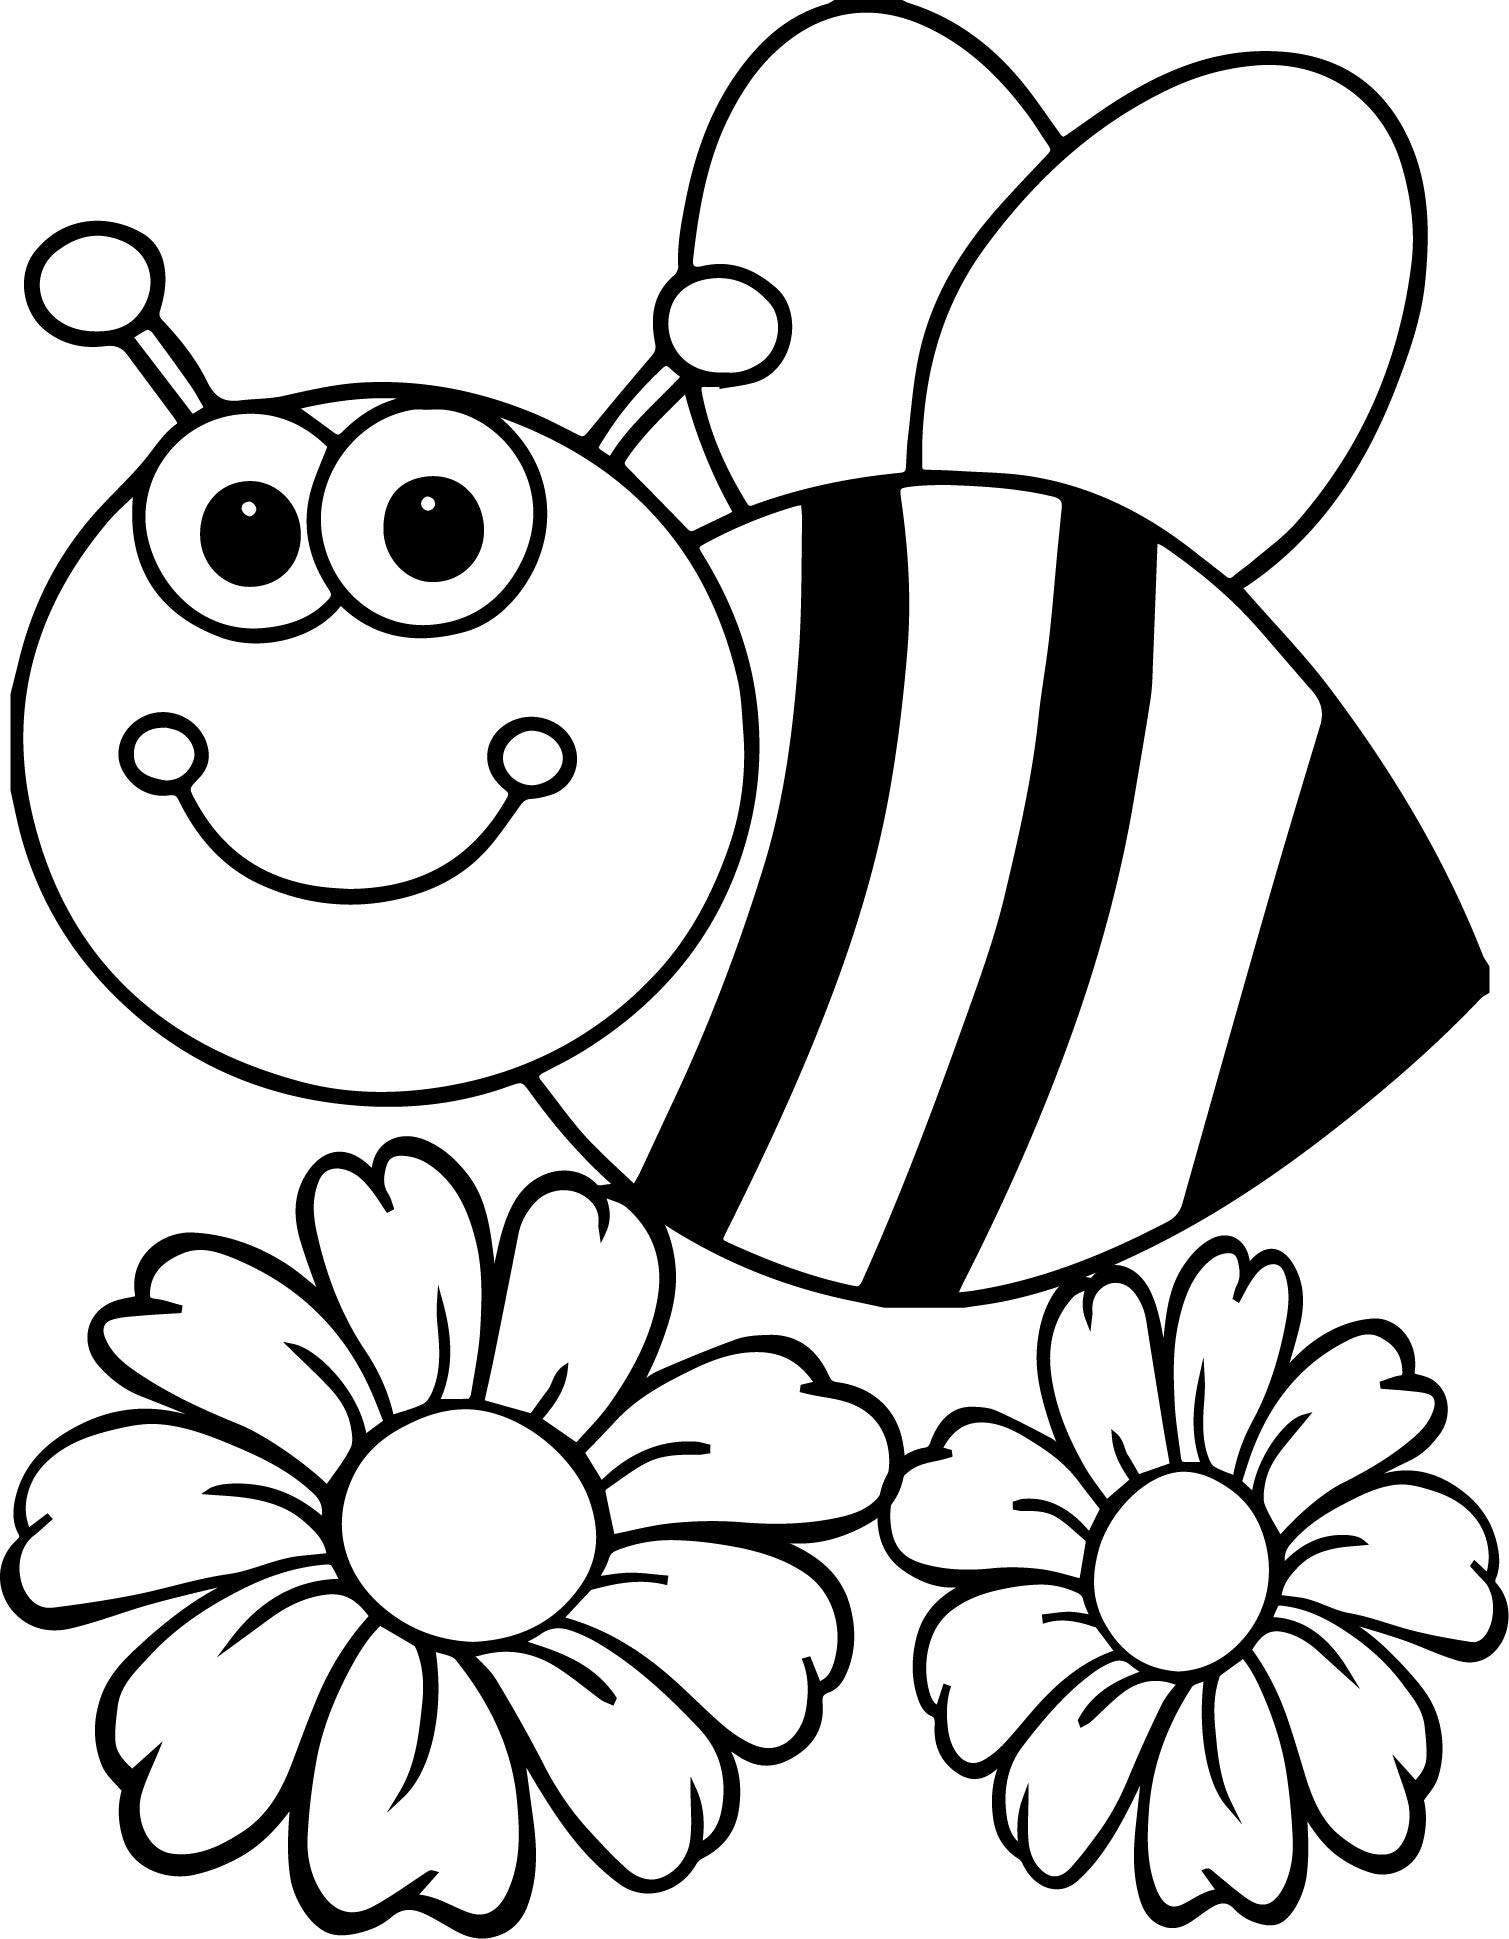 Bee Flower Coloring Page